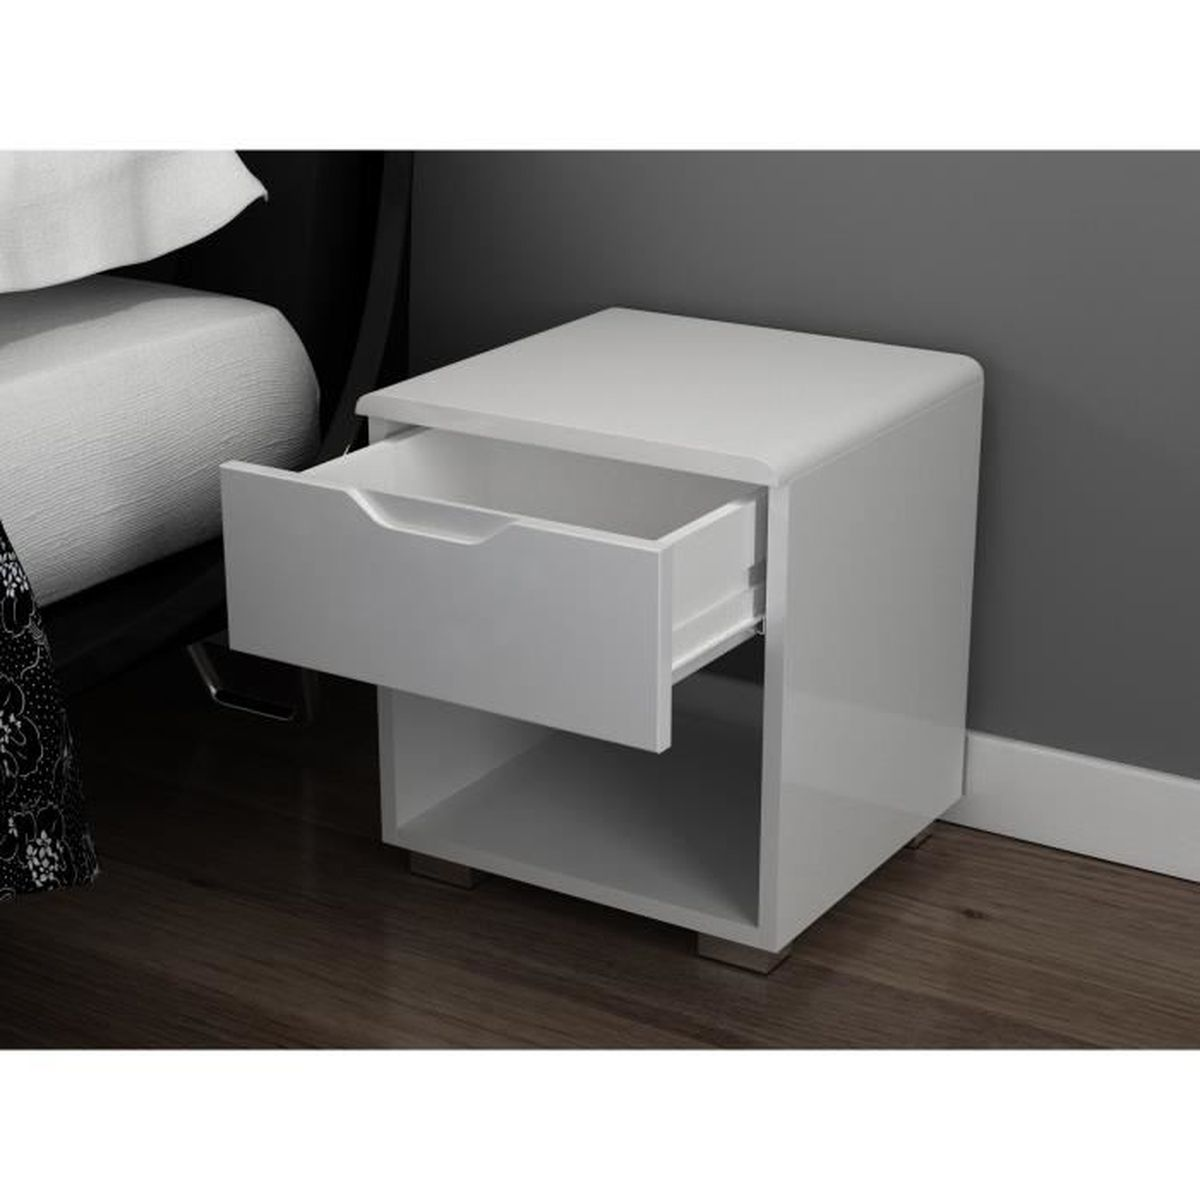 urbano chevet 35 cm laqu blanc brillant achat vente. Black Bedroom Furniture Sets. Home Design Ideas